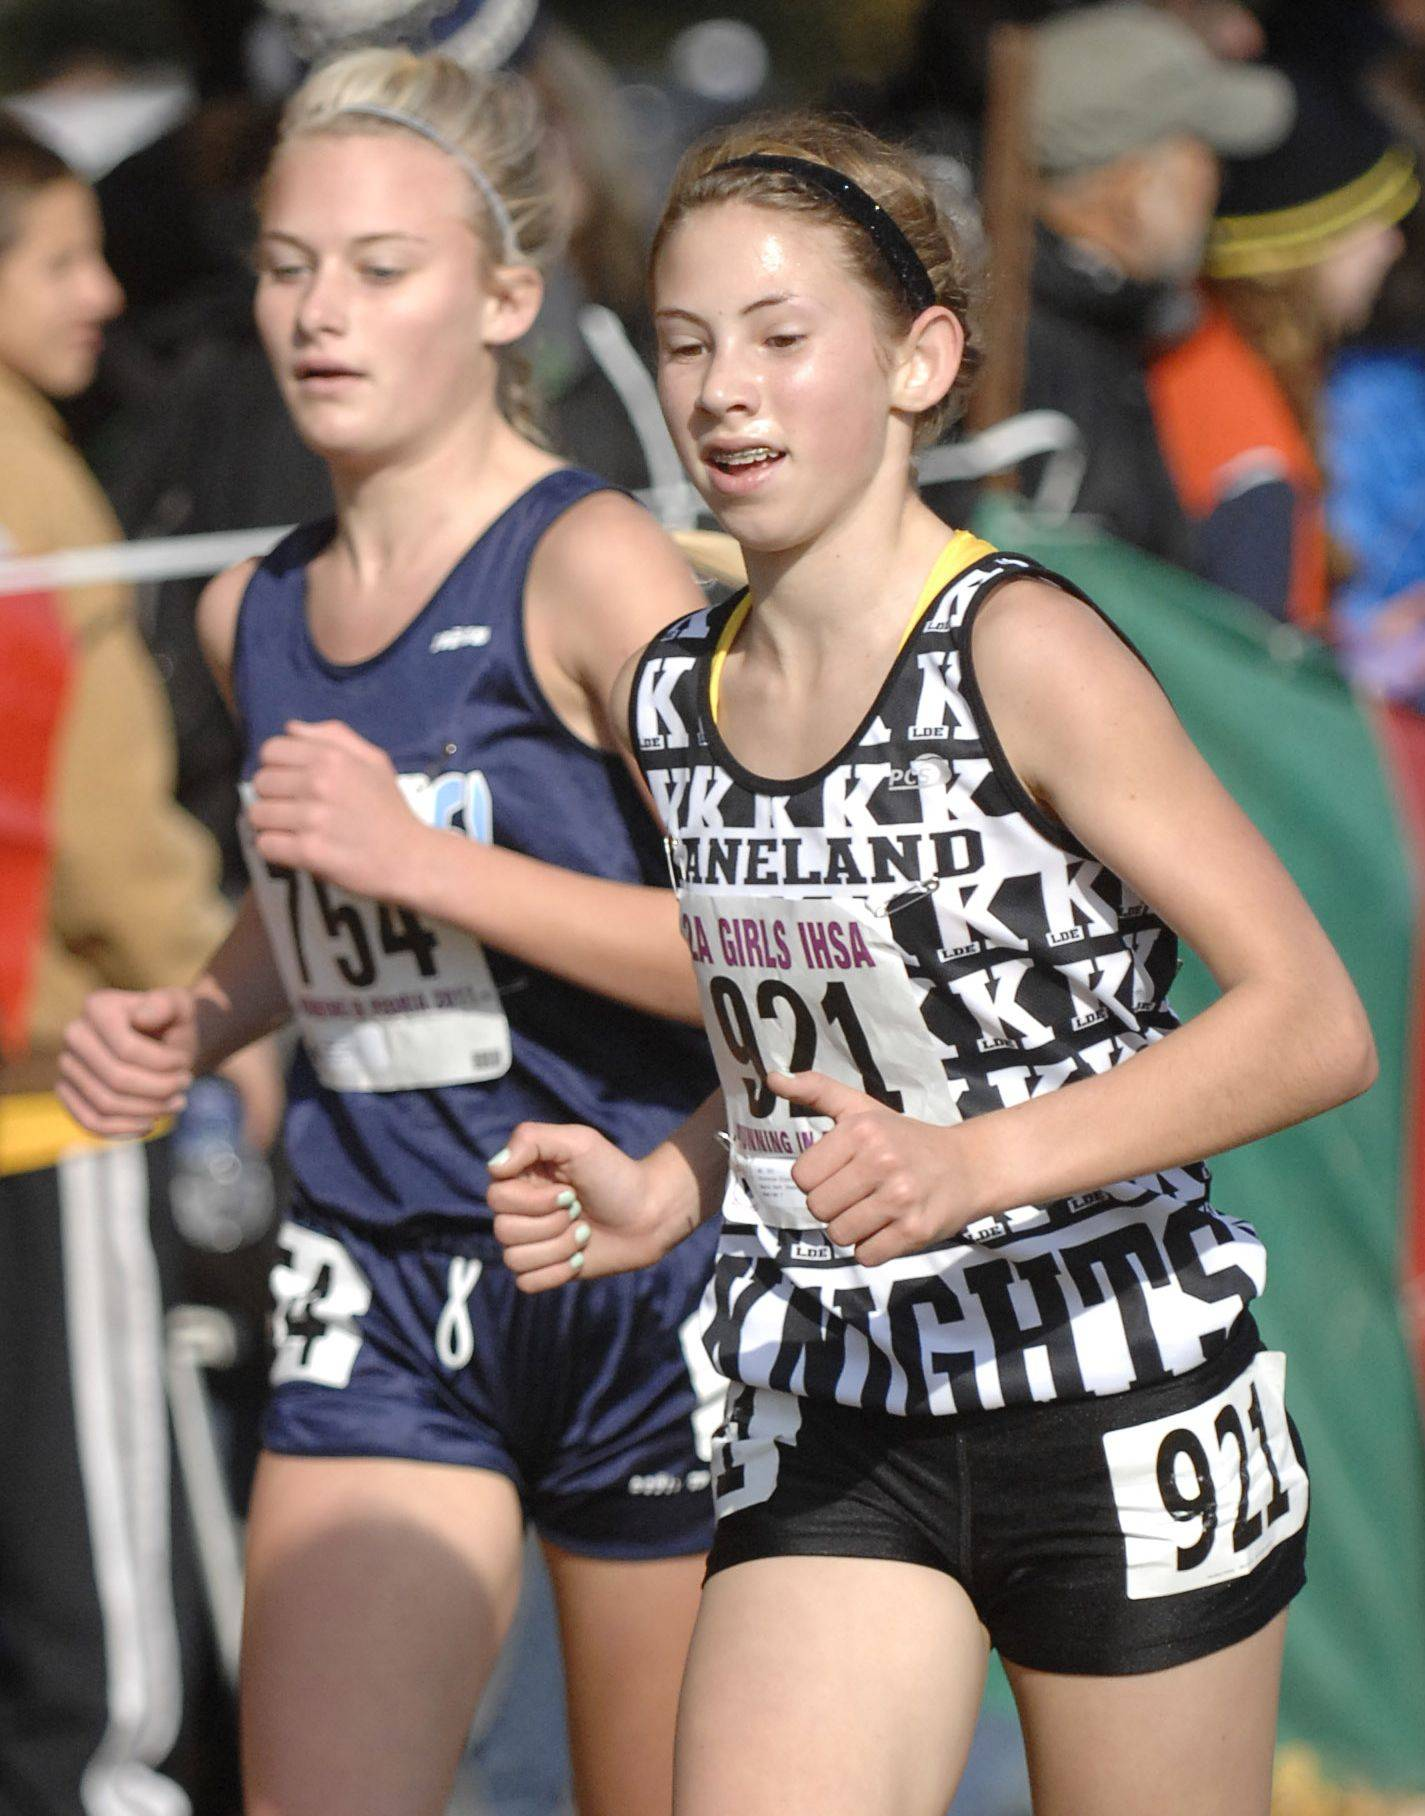 Kaneland's Victoria Clinton took 11th with a time of 17:41 at the 2011 Class 2A state cross meet.